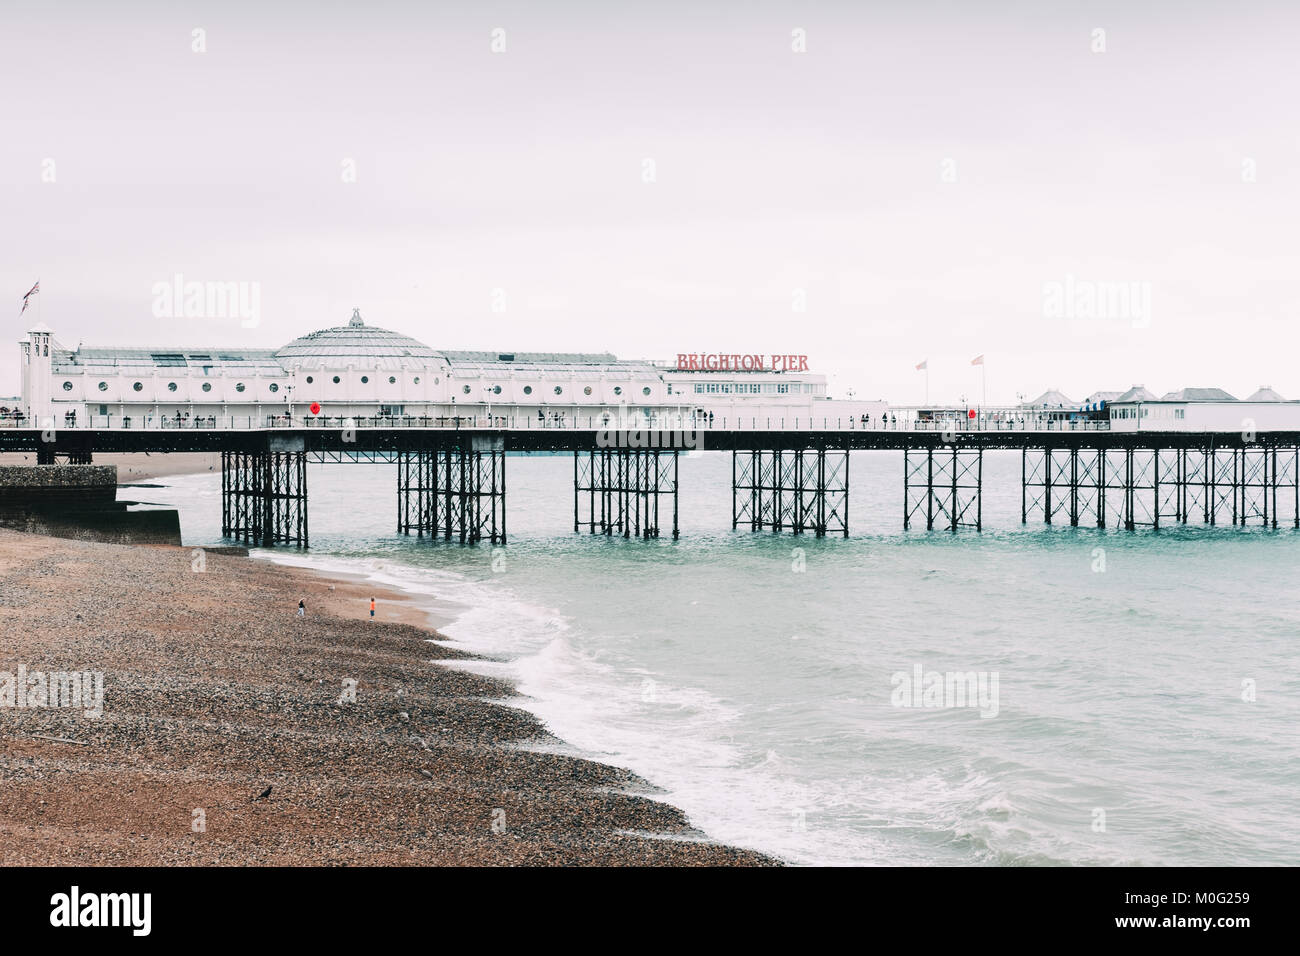 Famous pier in Brighton, the most popular seaside destination in the UK for overseas tourists. - Stock Image